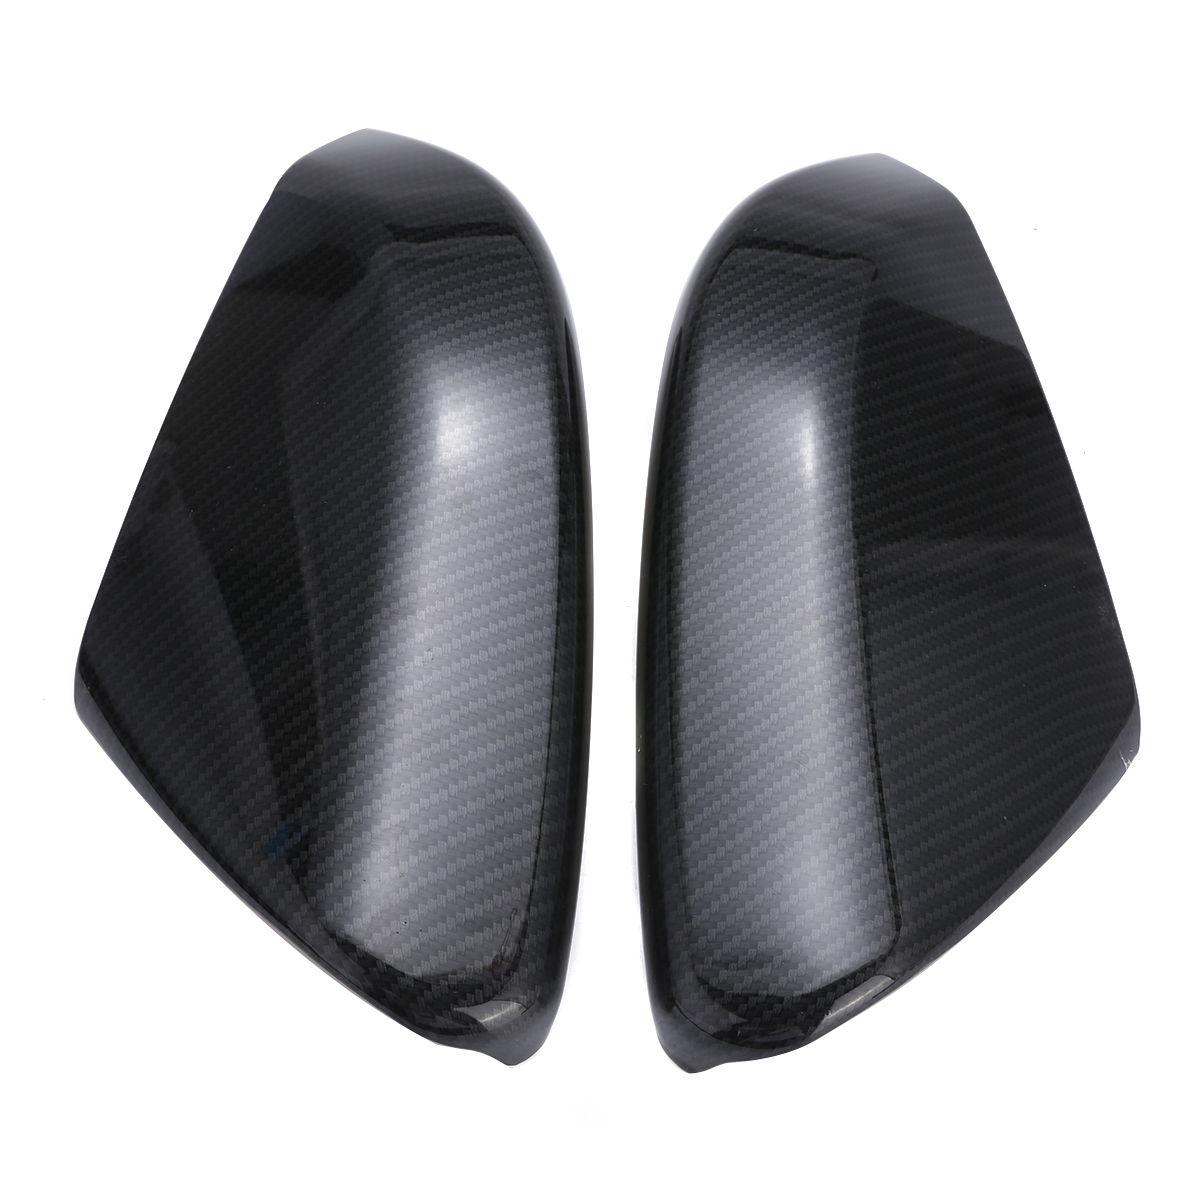 For Civic Door Car Rear View Side Mirror Cover Cap For Honda Civic 2016 2017 2018 Molding Styling Trim Cover Carbon Fiber Style цена